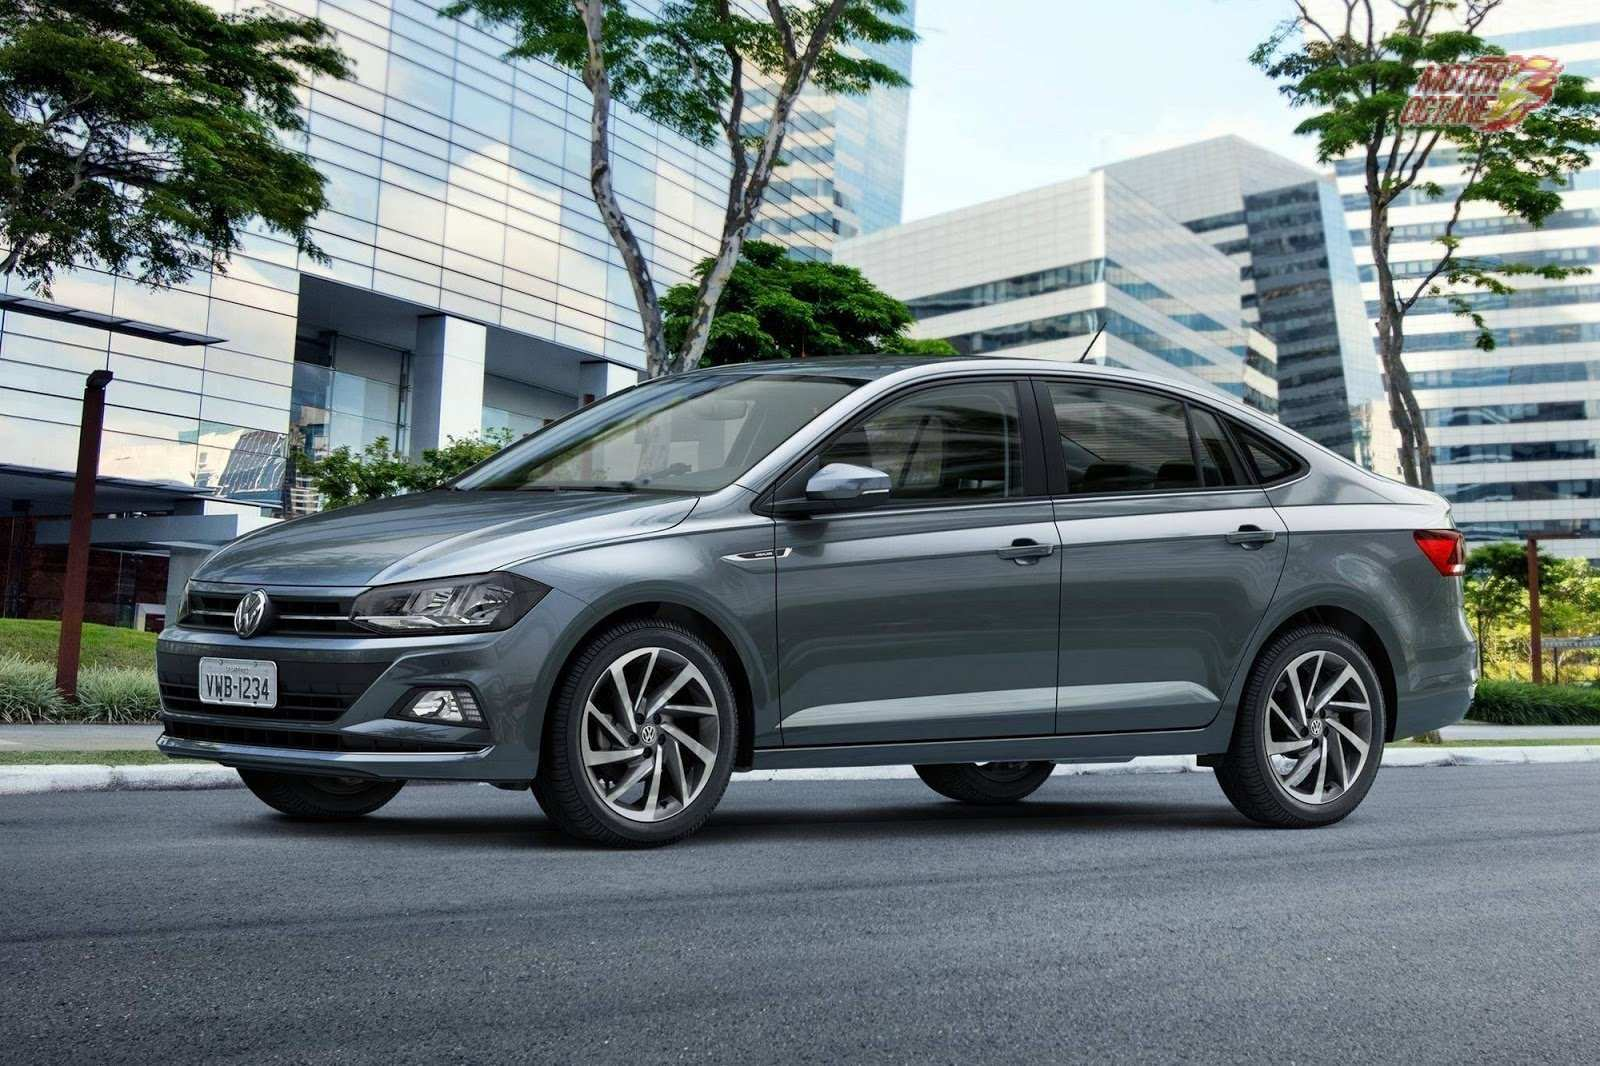 60 Best Review Volkswagen Vento 2020 First Drive by Volkswagen Vento 2020